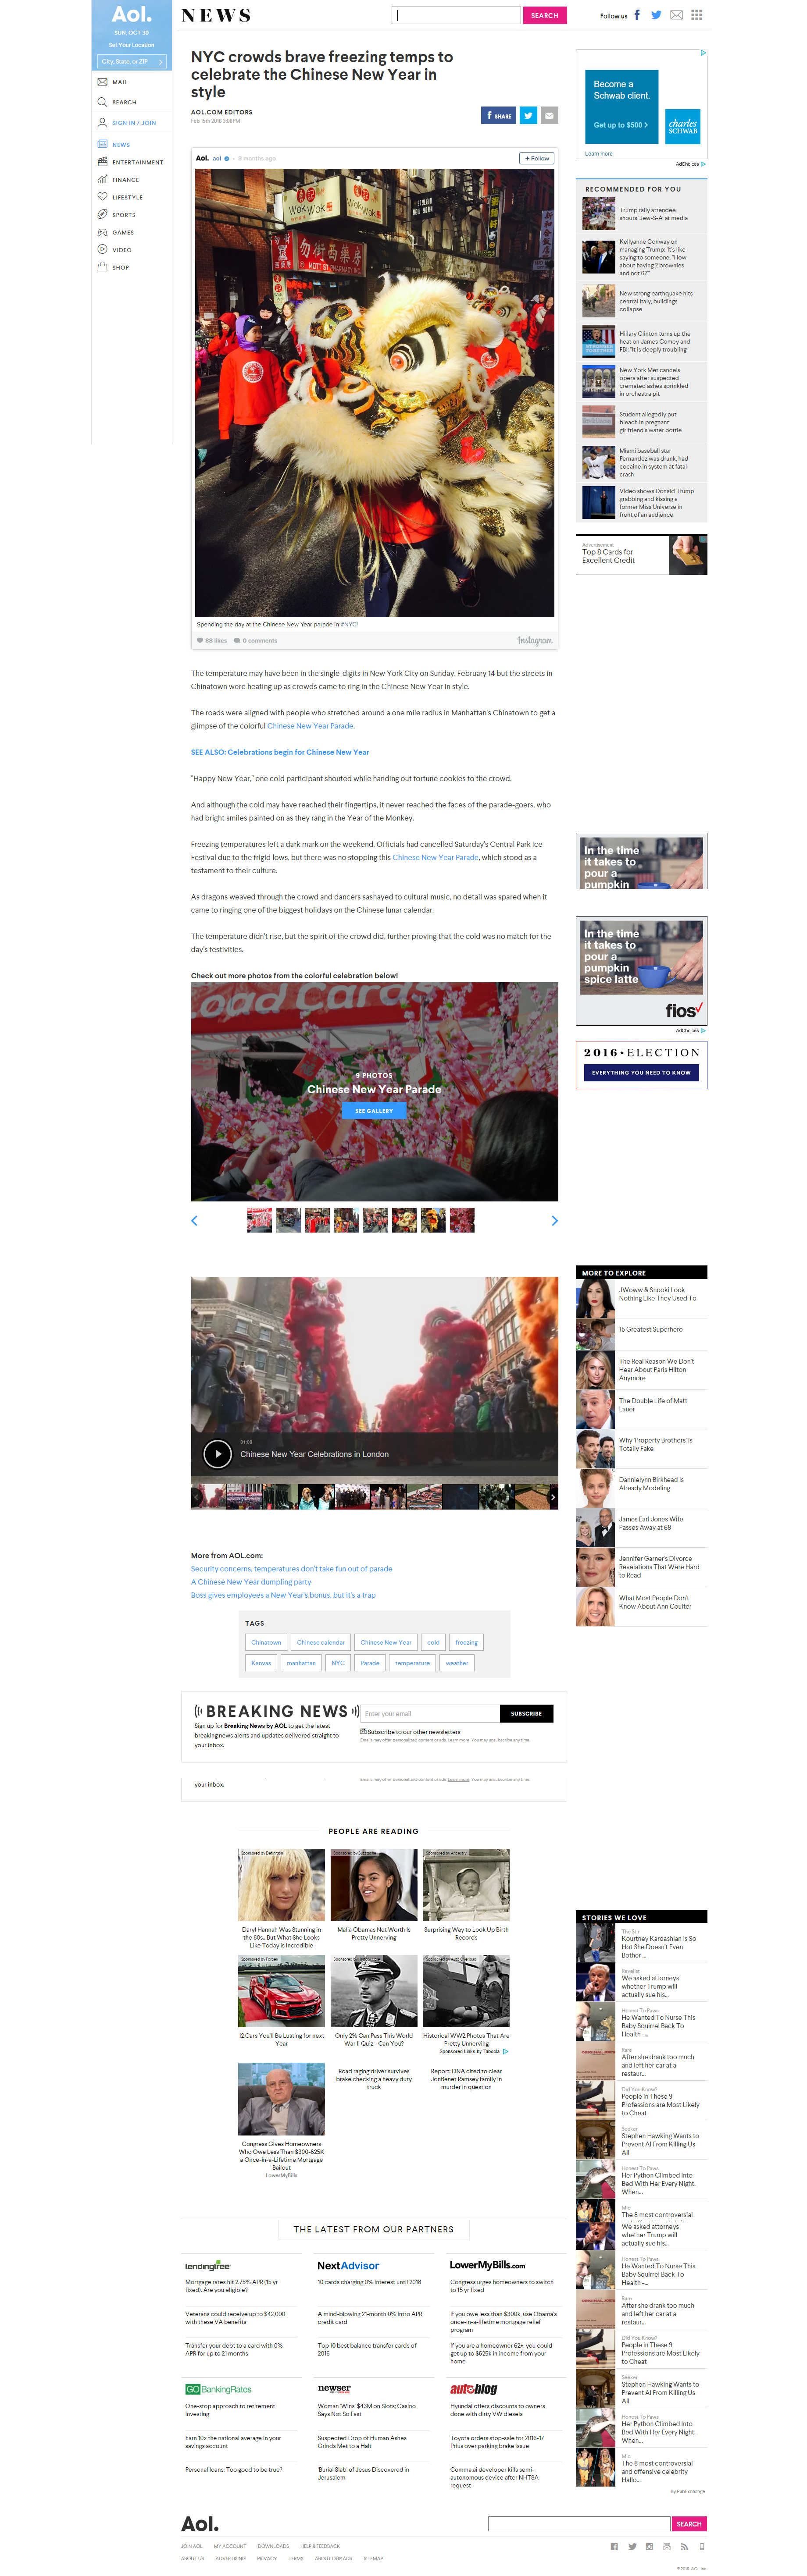 AOL News - NYC crowds brave freezing temps to celebrate the Chinese New Year in style February 15, 2016